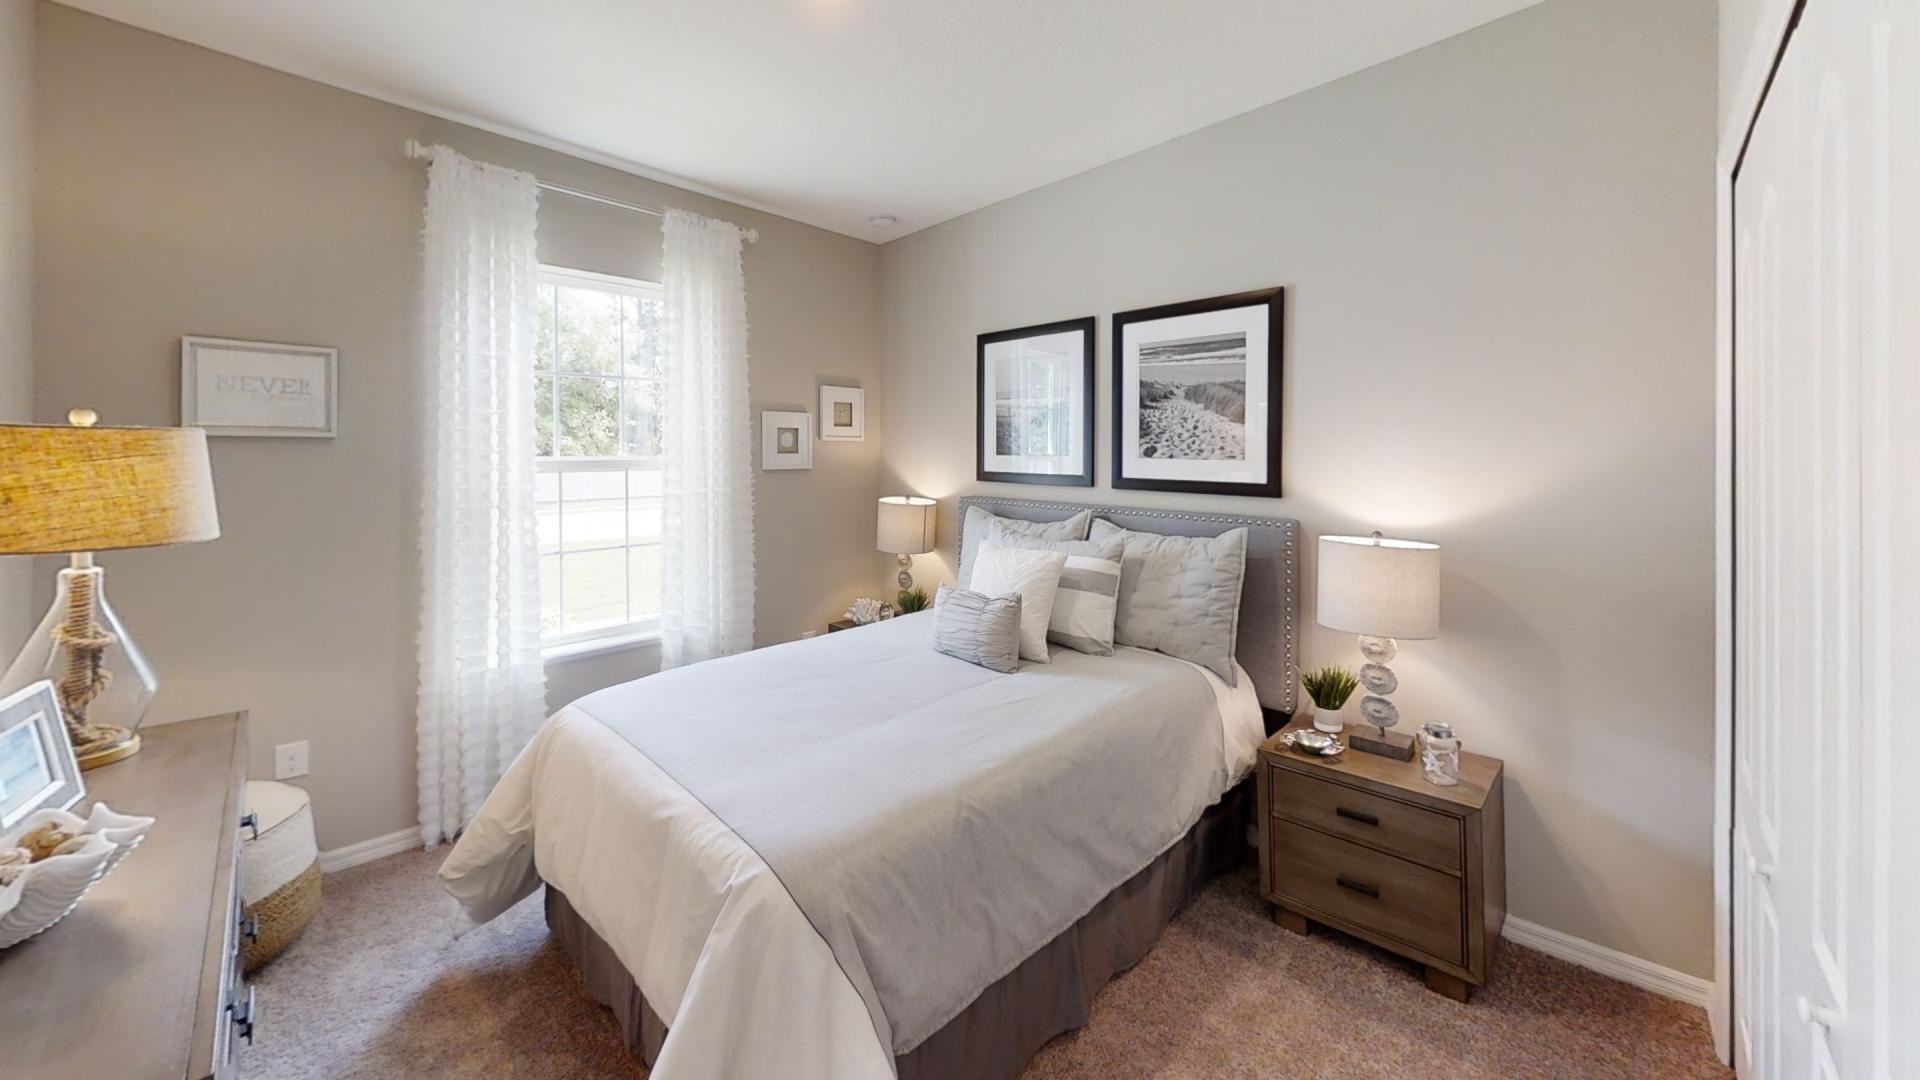 Bedroom featured in the Mesquite By Maronda Homes in Melbourne, FL